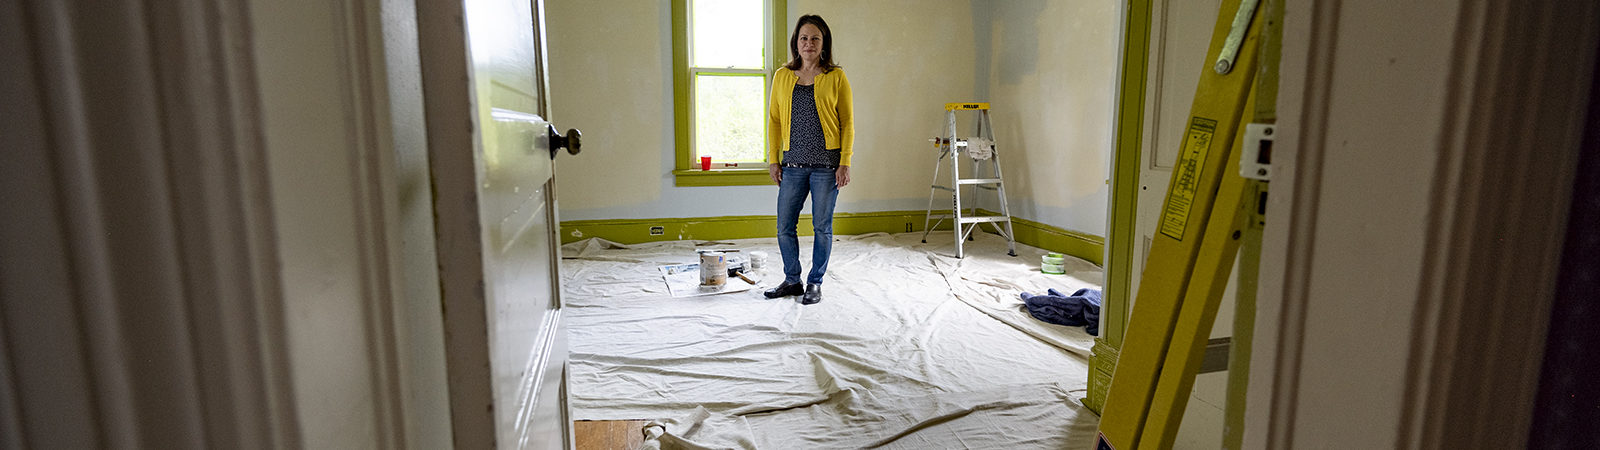 Northland College Diversity Coordinator Ruth deJesus stands in new center.